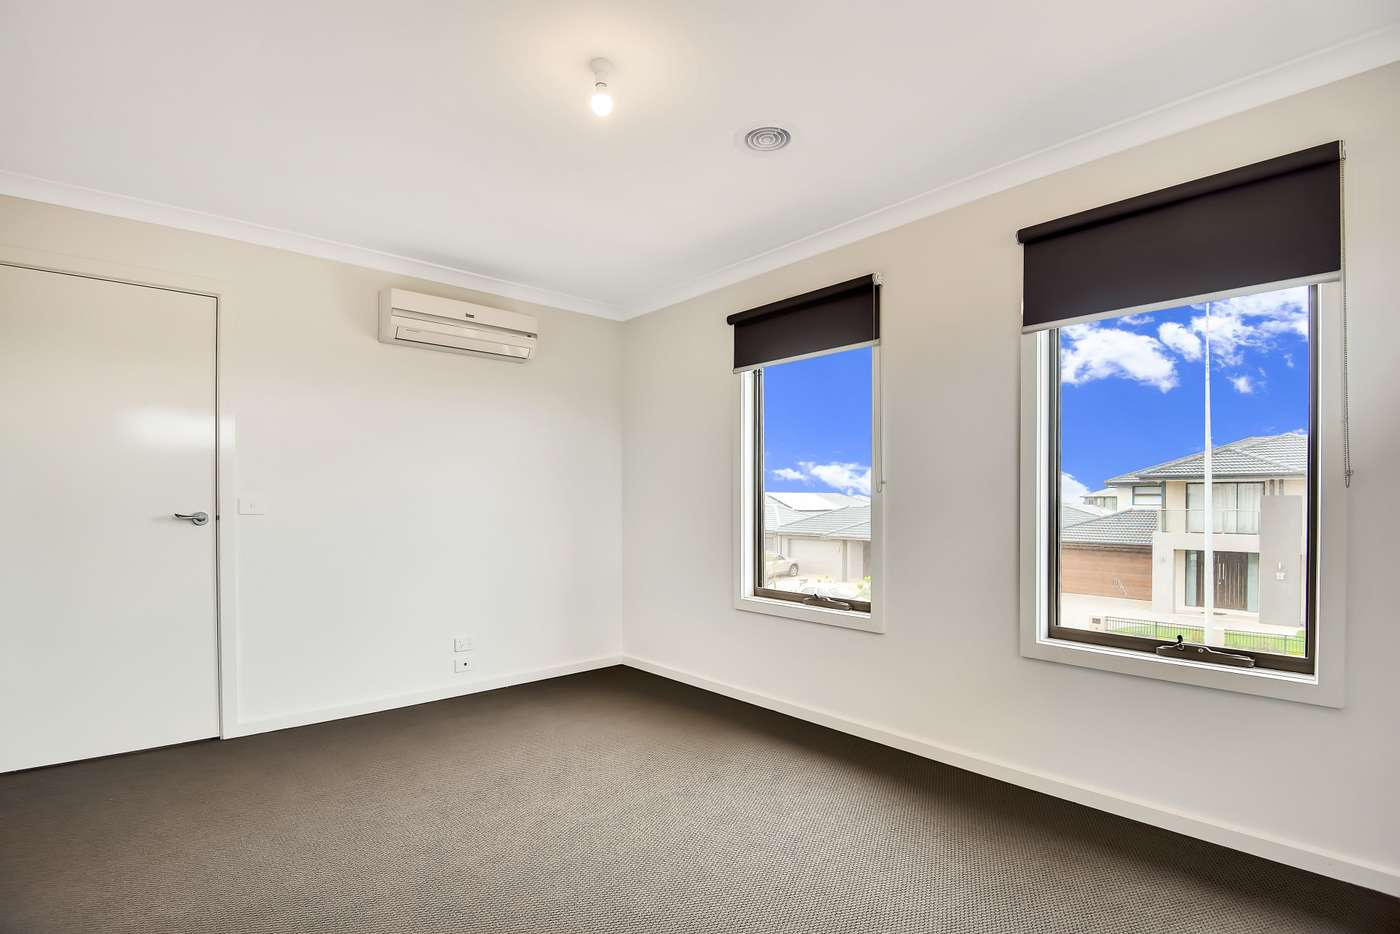 Sixth view of Homely house listing, 25 Haystack Drive, Truganina VIC 3029